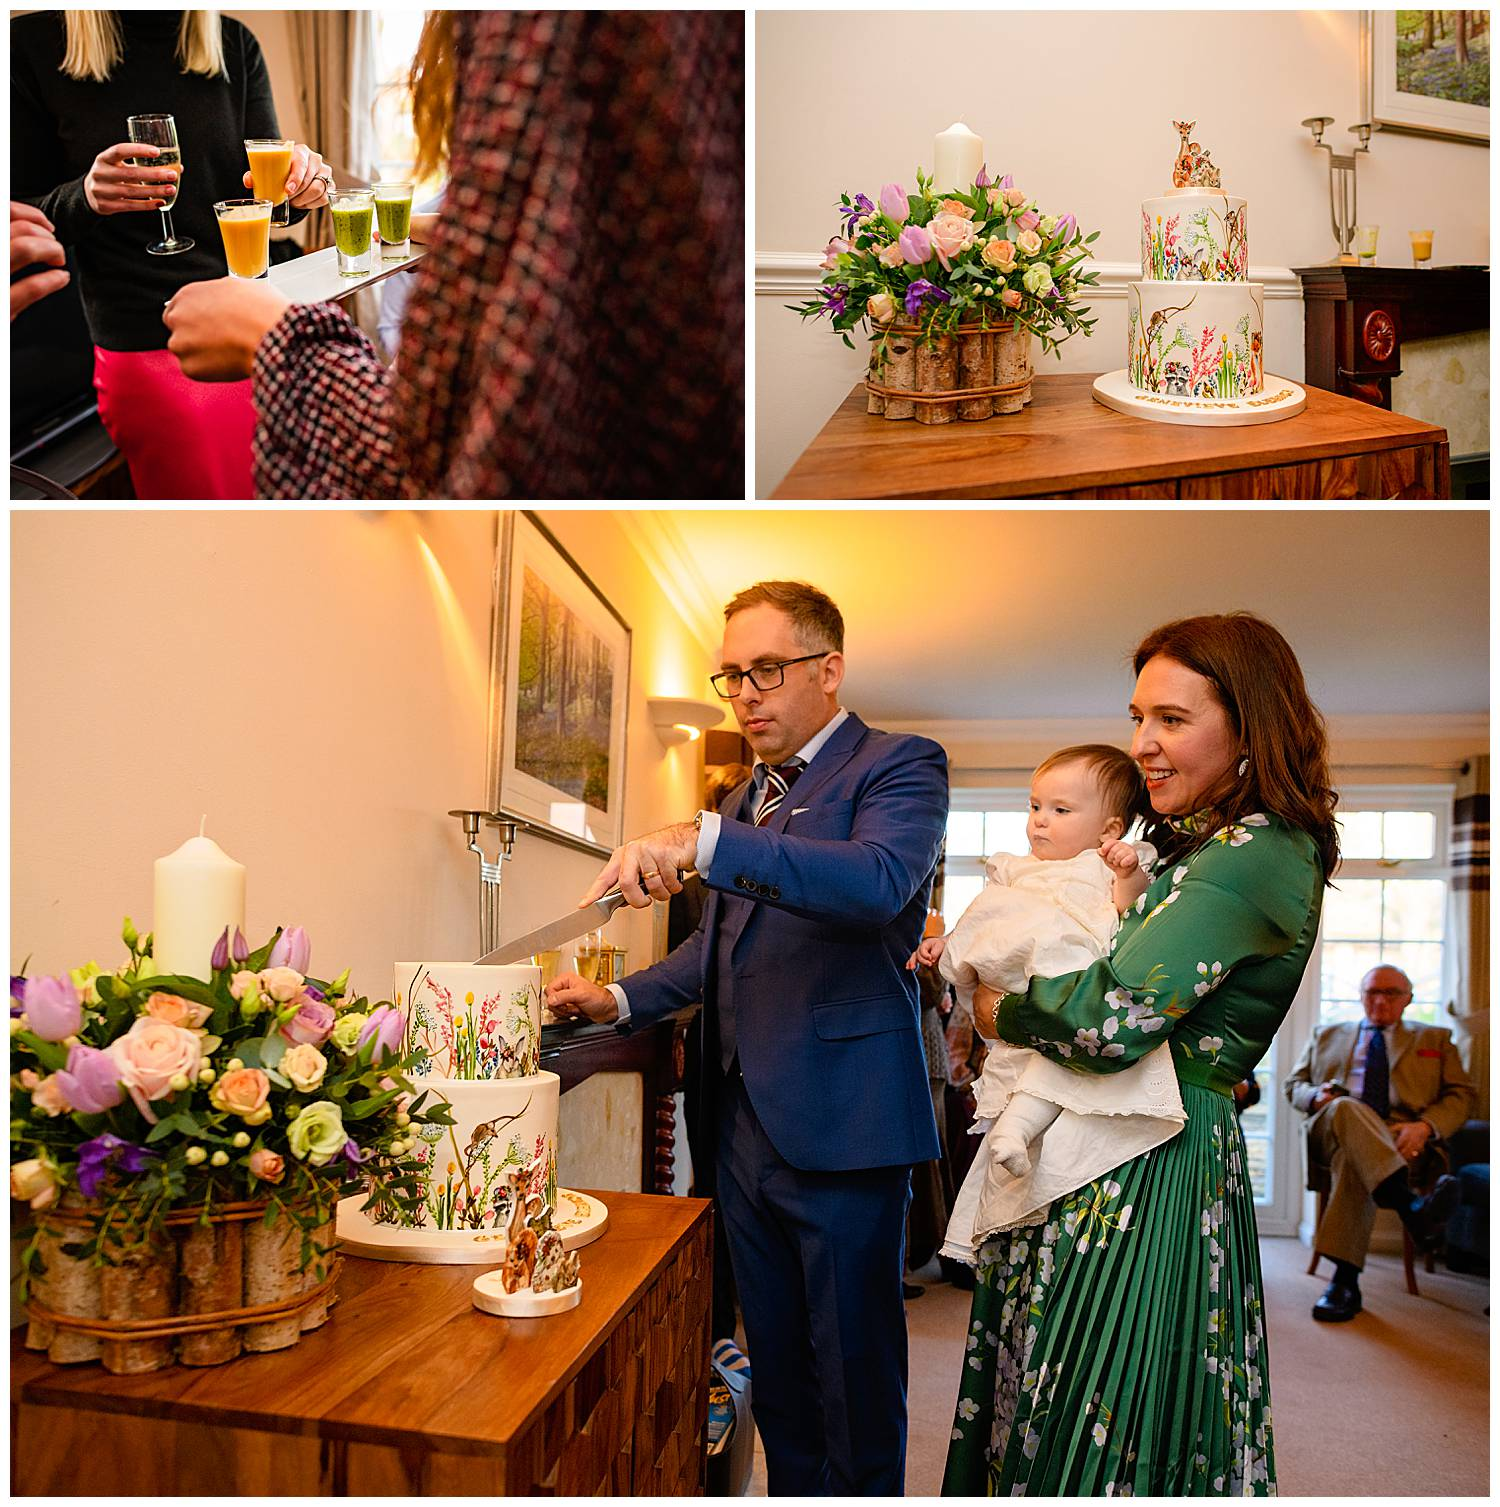 Montage of photos showing party guests selecting food and christening cake being cut by baby's father